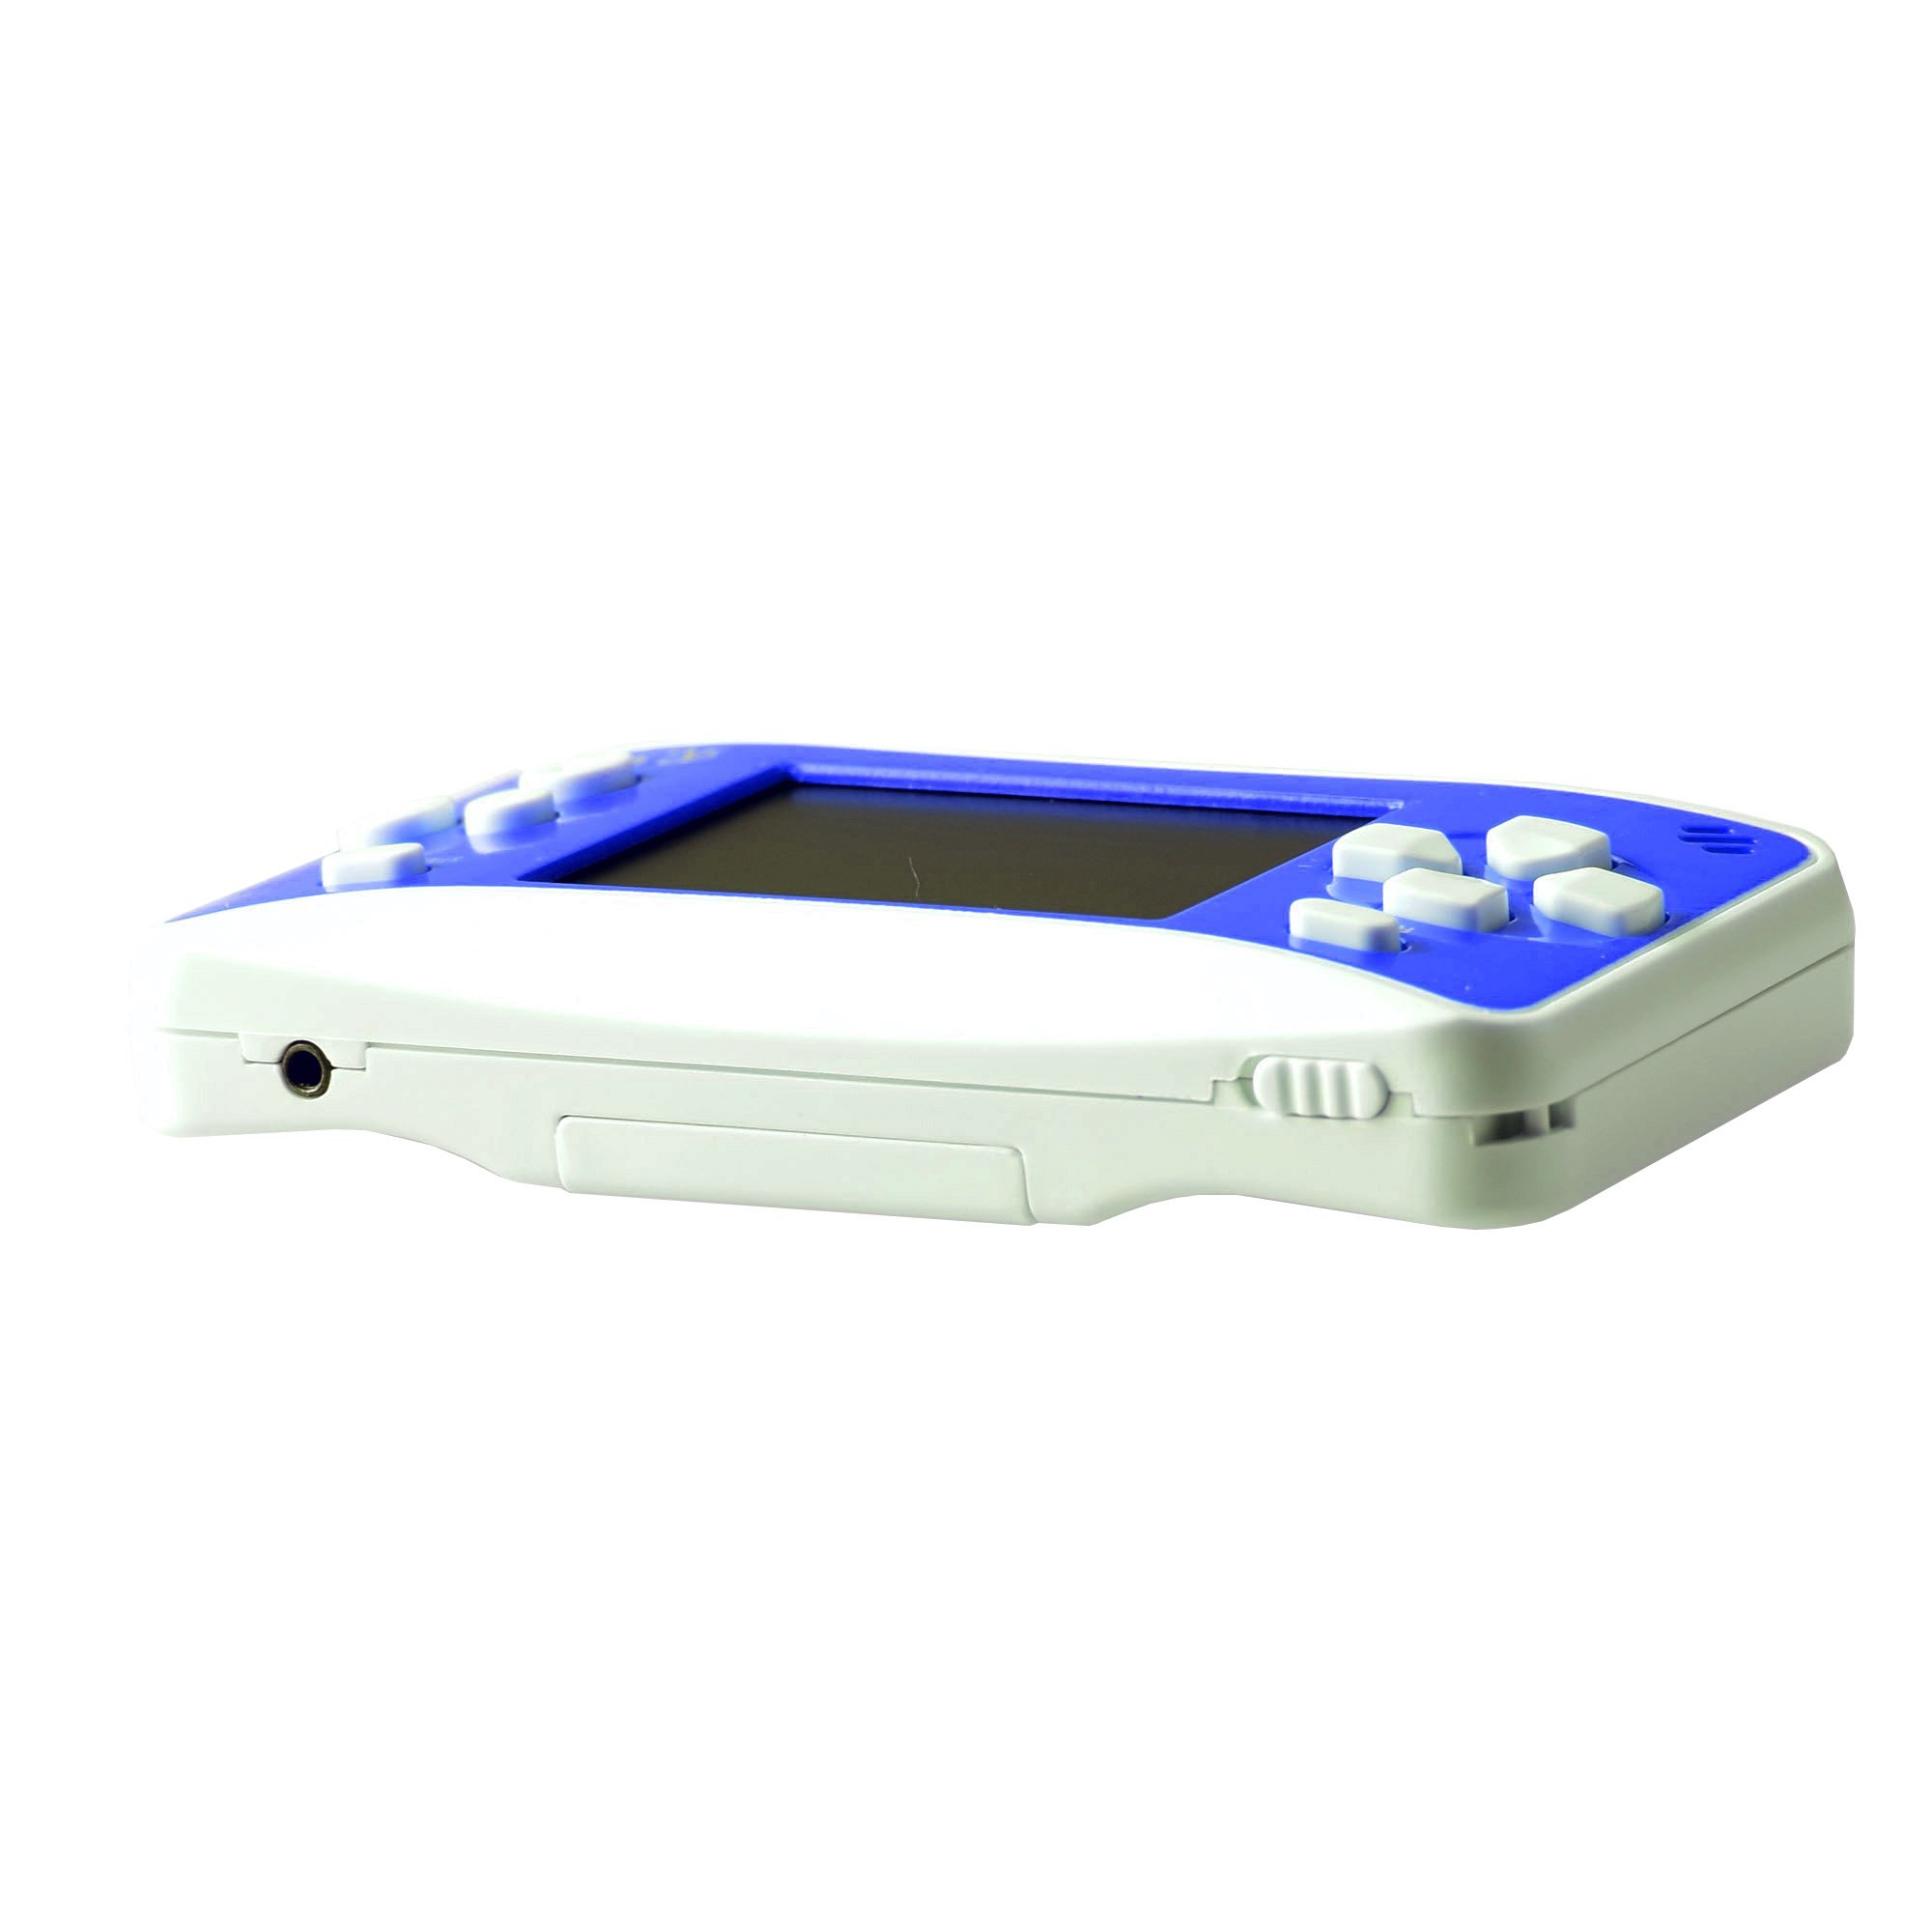 Gam3Gear 3 x AAA Built-in 152 Retro Classic Games 2.5'' LCD Handheld Game Console with Speaker Blue/White by Gam3Gear (Image #3)